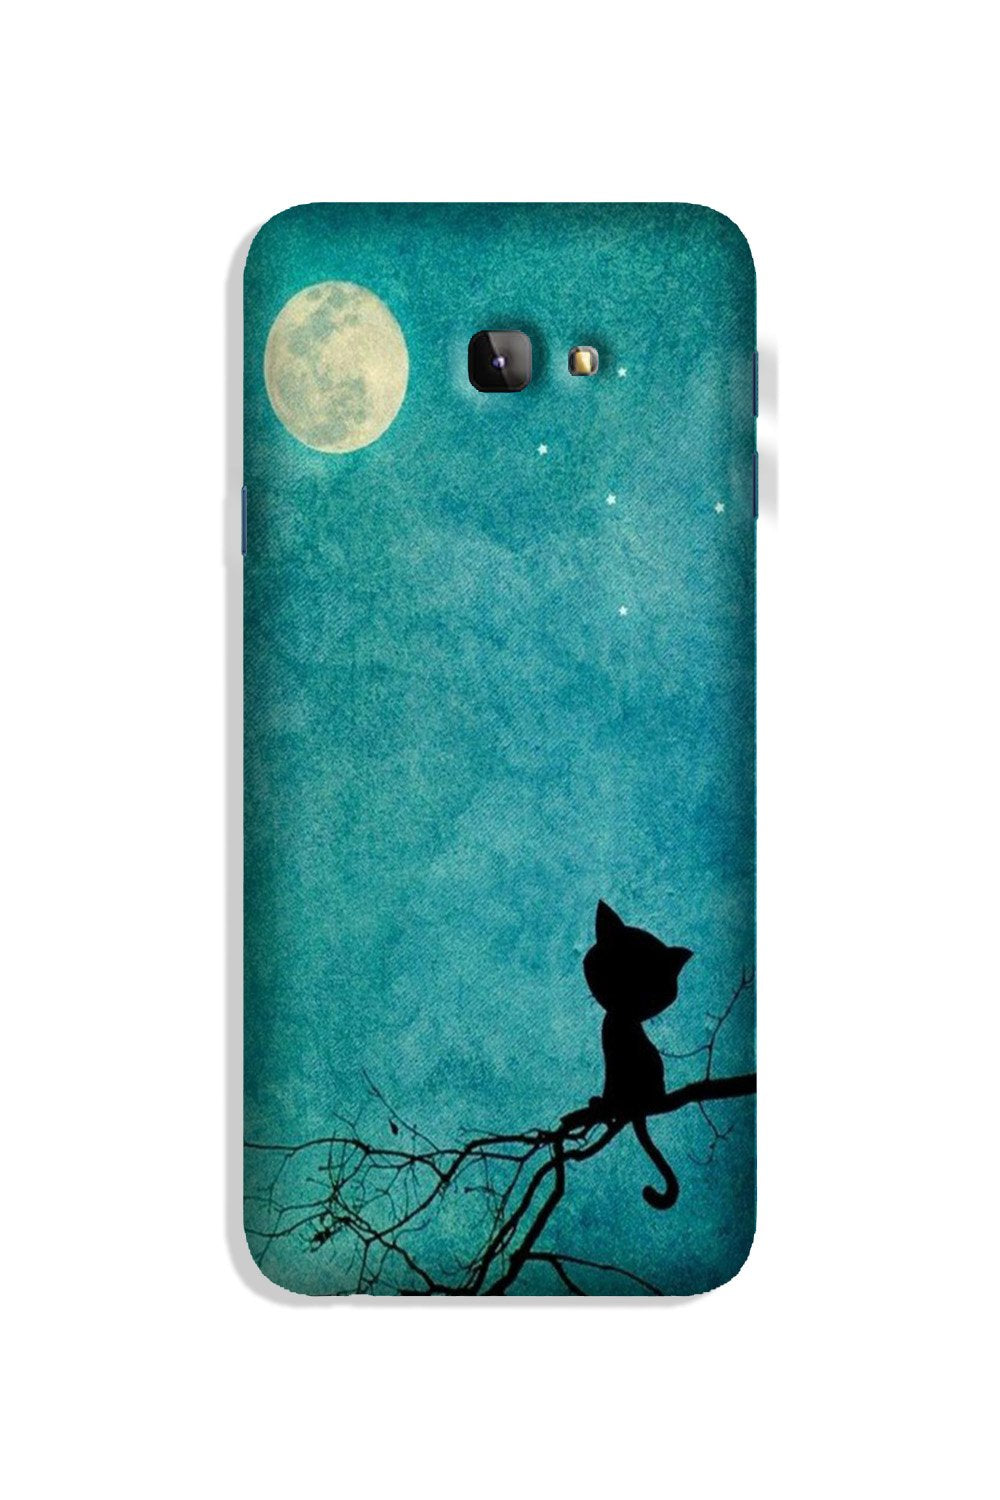 Moon cat Case for Galaxy J4 Plus